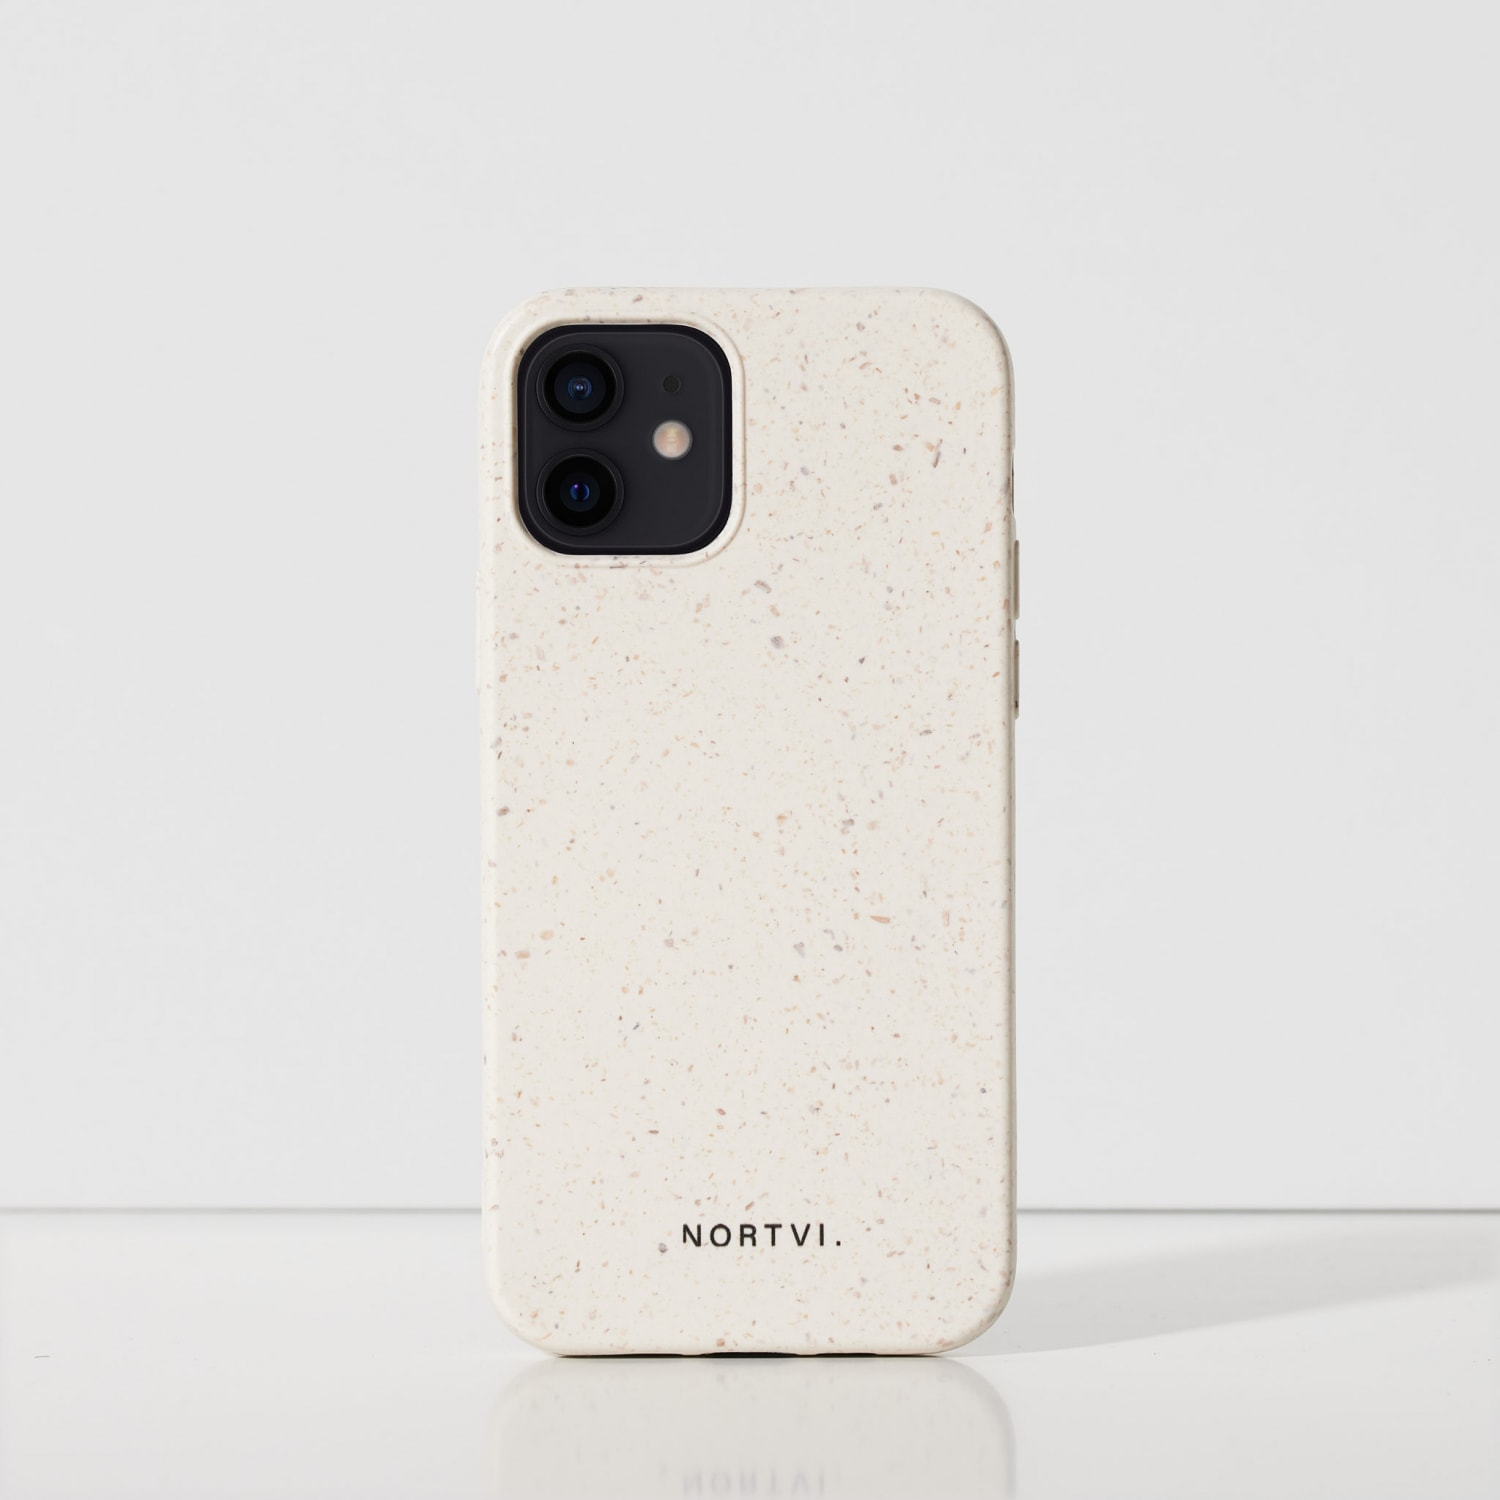 Iphone 12 white hoes case